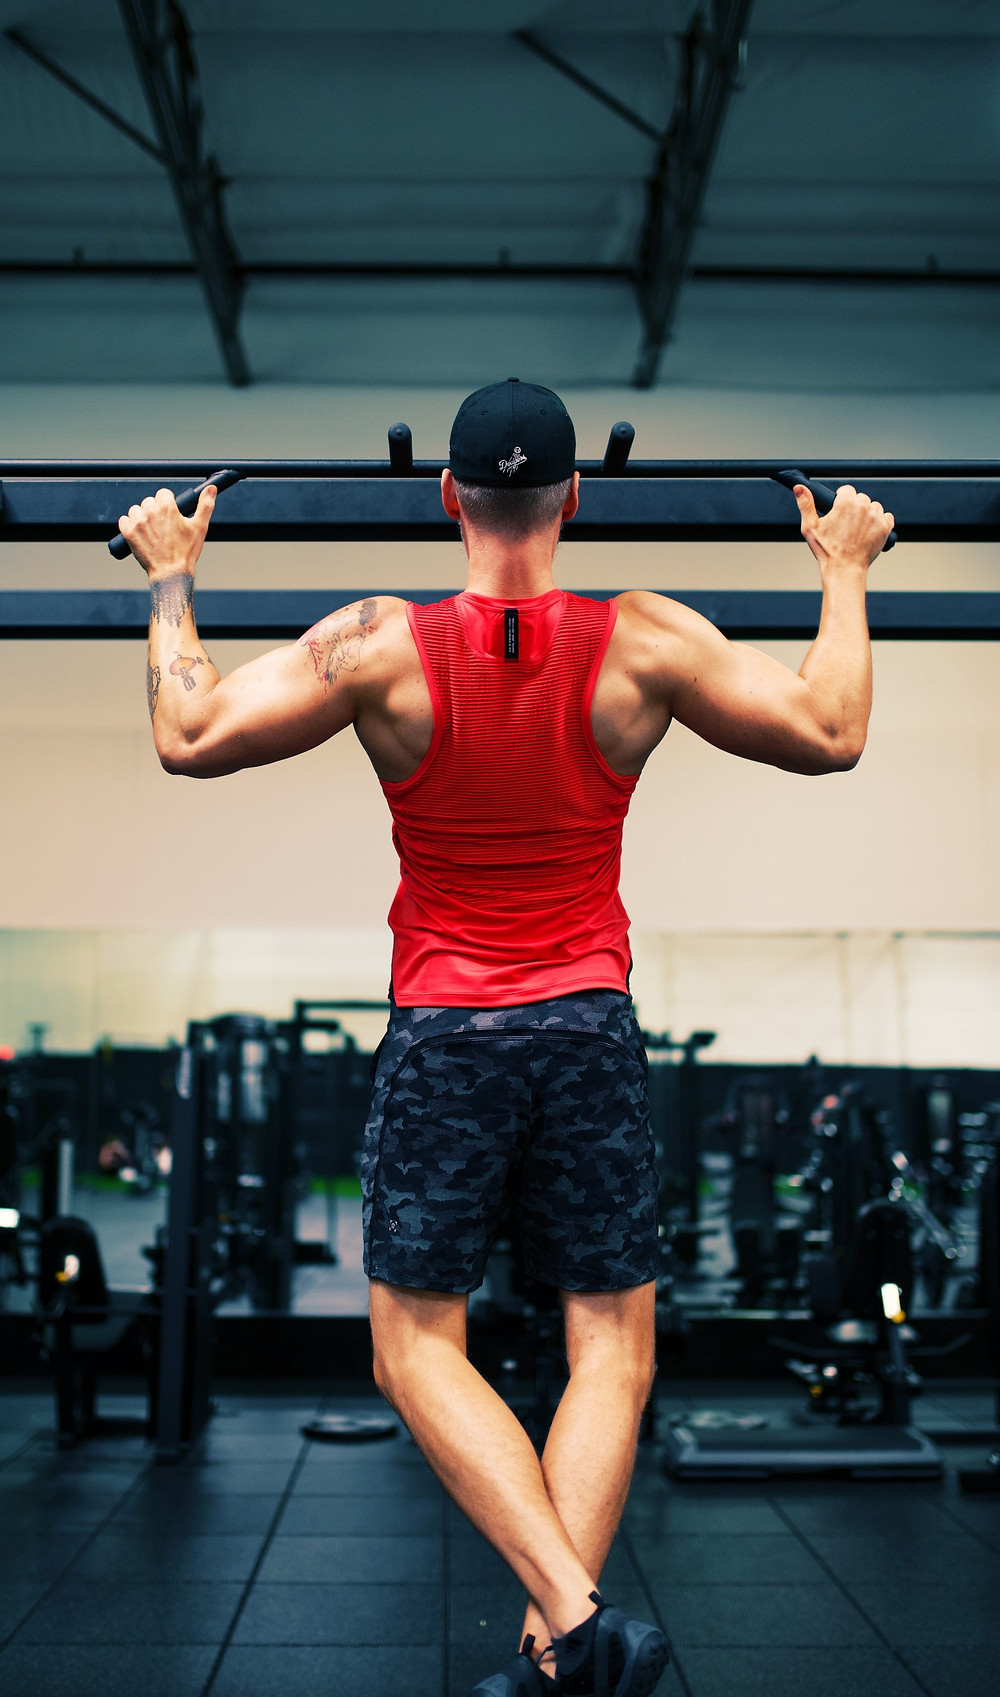 Man in Red top doing a Pull-up with a depressed and retracted scapular position.